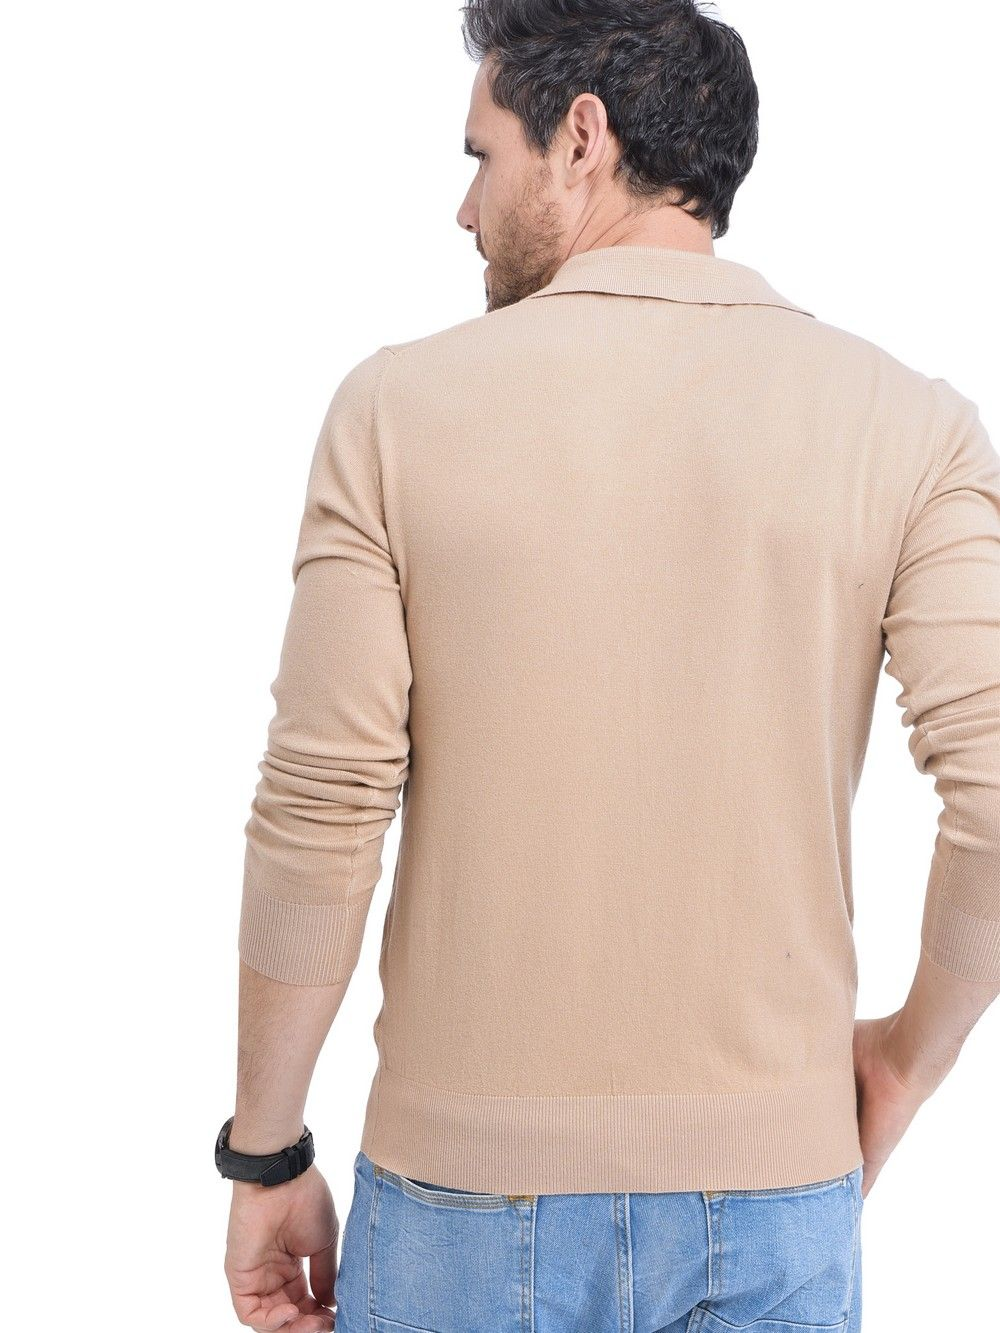 William De Faye Polo Neck Sweater with Buttons in Beige